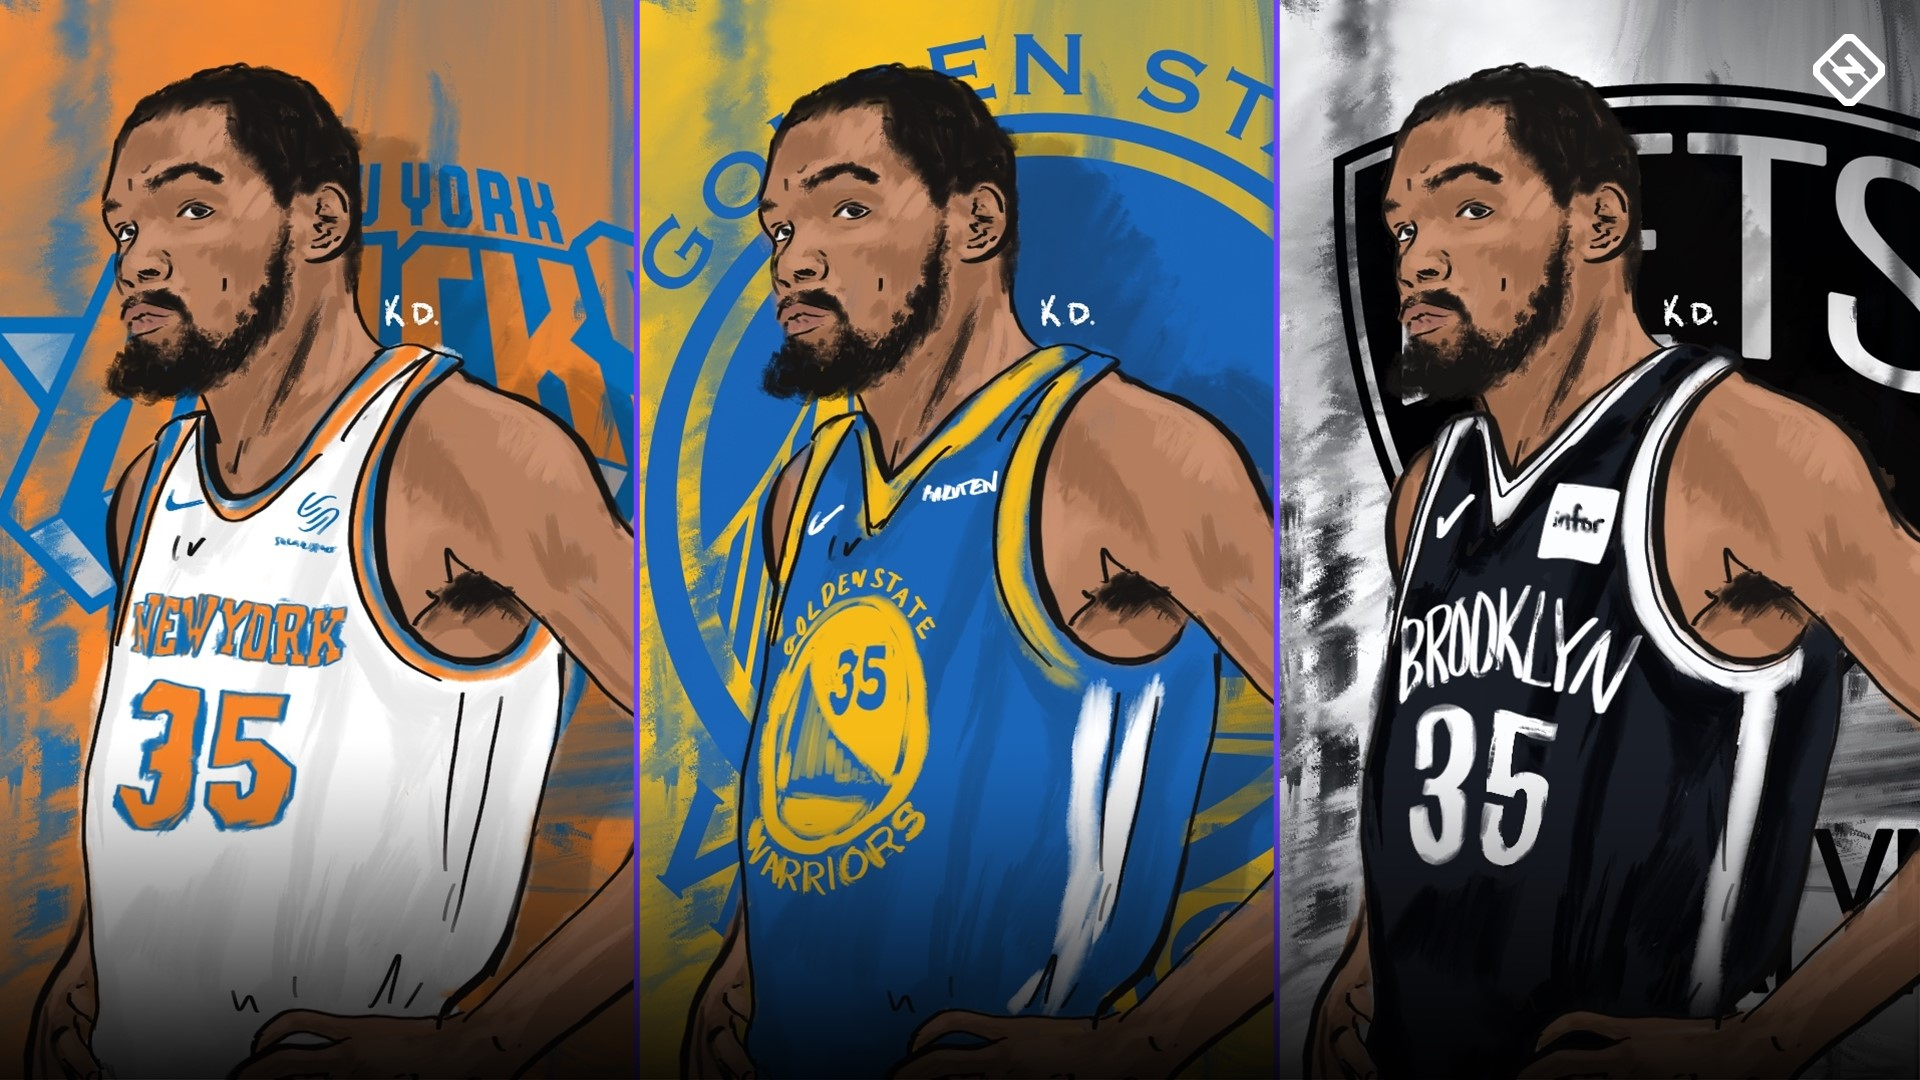 Kevin Durant Free Agency Fits Will Kd Choose Warriors Knicks Nets Or Clippers After Major Injury Sporting News